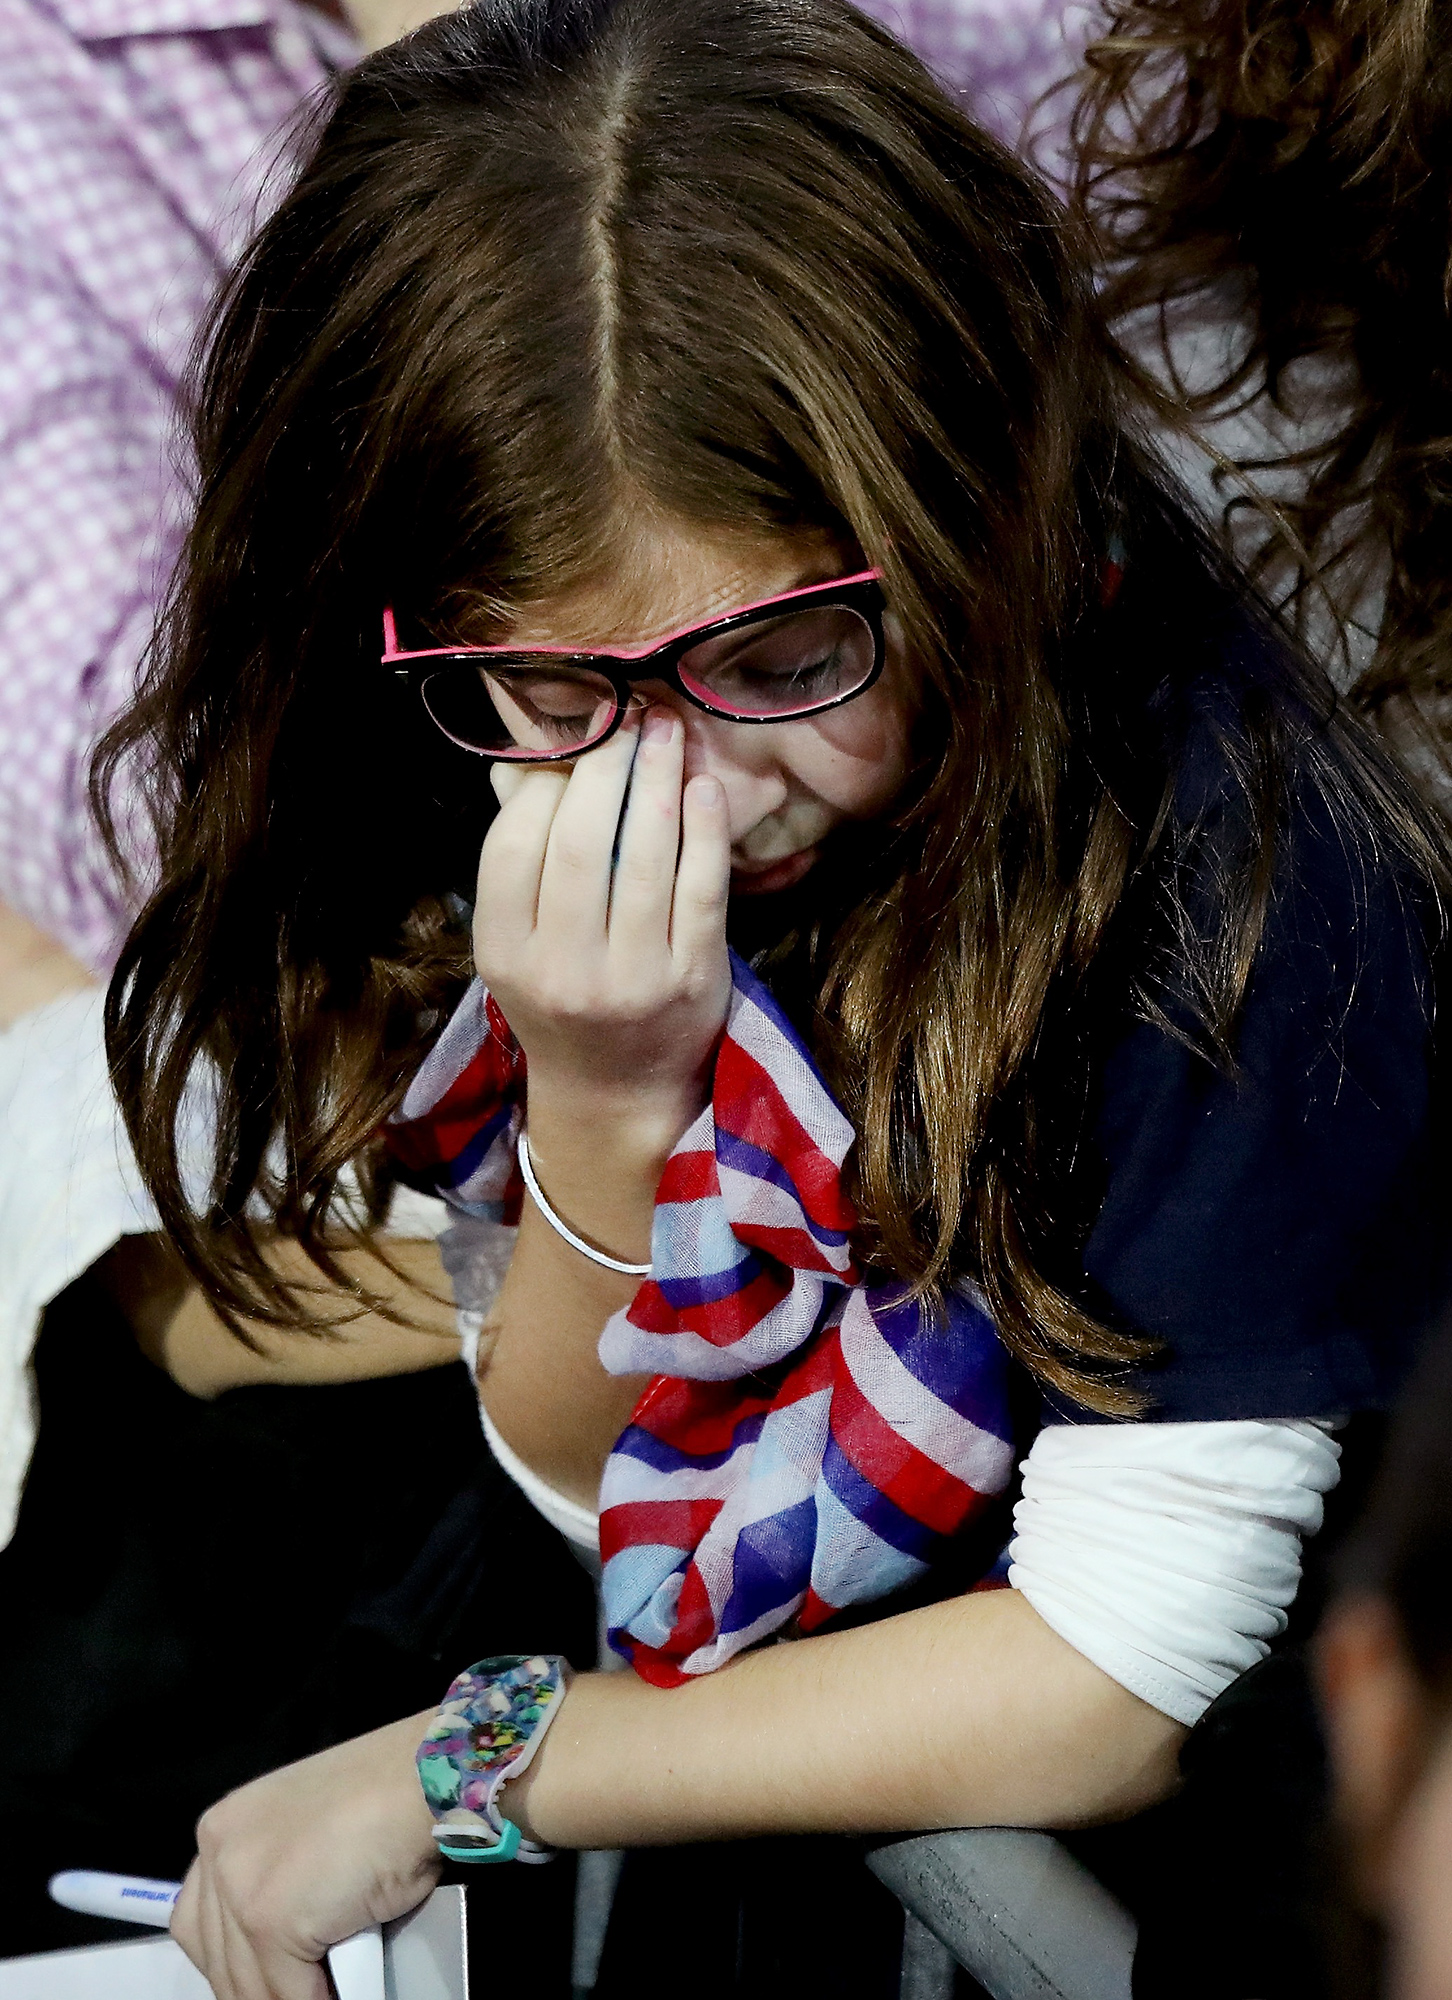 NEW YORK, NY - NOVEMBER 08: A young girl rubs her eyes as she watches voting results come in at Democratic presidential nominee former Secretary of State Hillary Clinton's election night event at the Jacob K. Javits Convention Center November 8, 2016 in New York City. Clinton is running against Republican nominee, Donald J. Trump to be the 45th President of the United States. (Photo by Drew Angerer/Getty Images) Getty Images North America 681261599 621810522